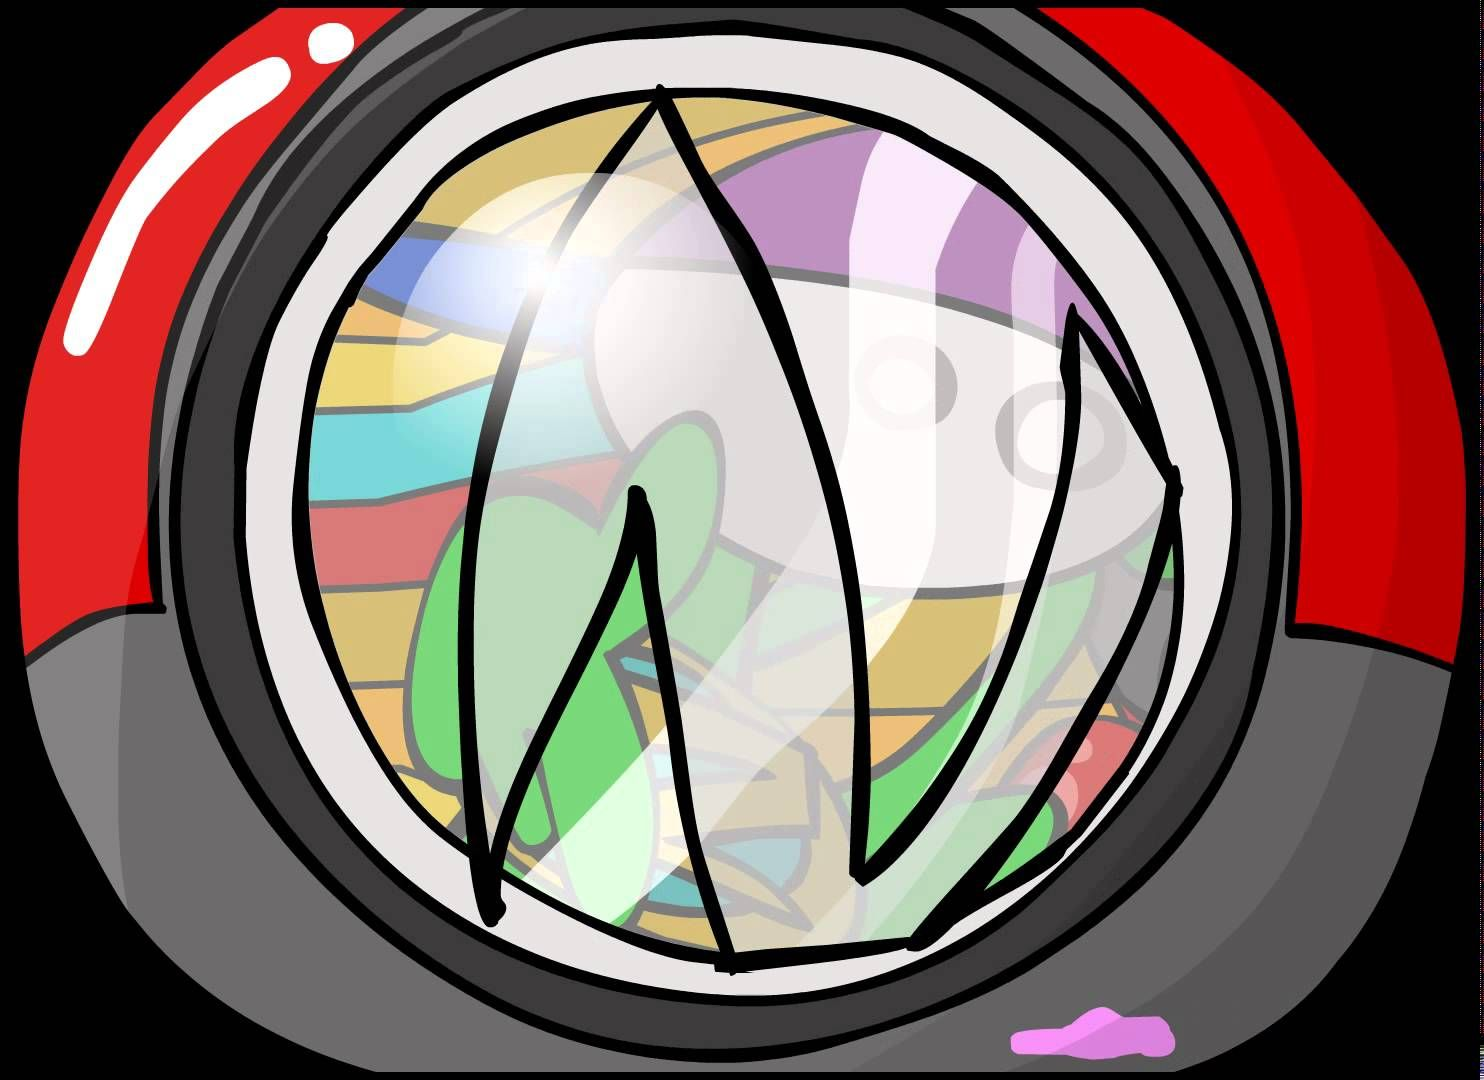 'fish Eye Lens', A New 'homestar Runner' Video Featuring Coach Z And Strong  Bad Rapping About Using A Fisheye Lens